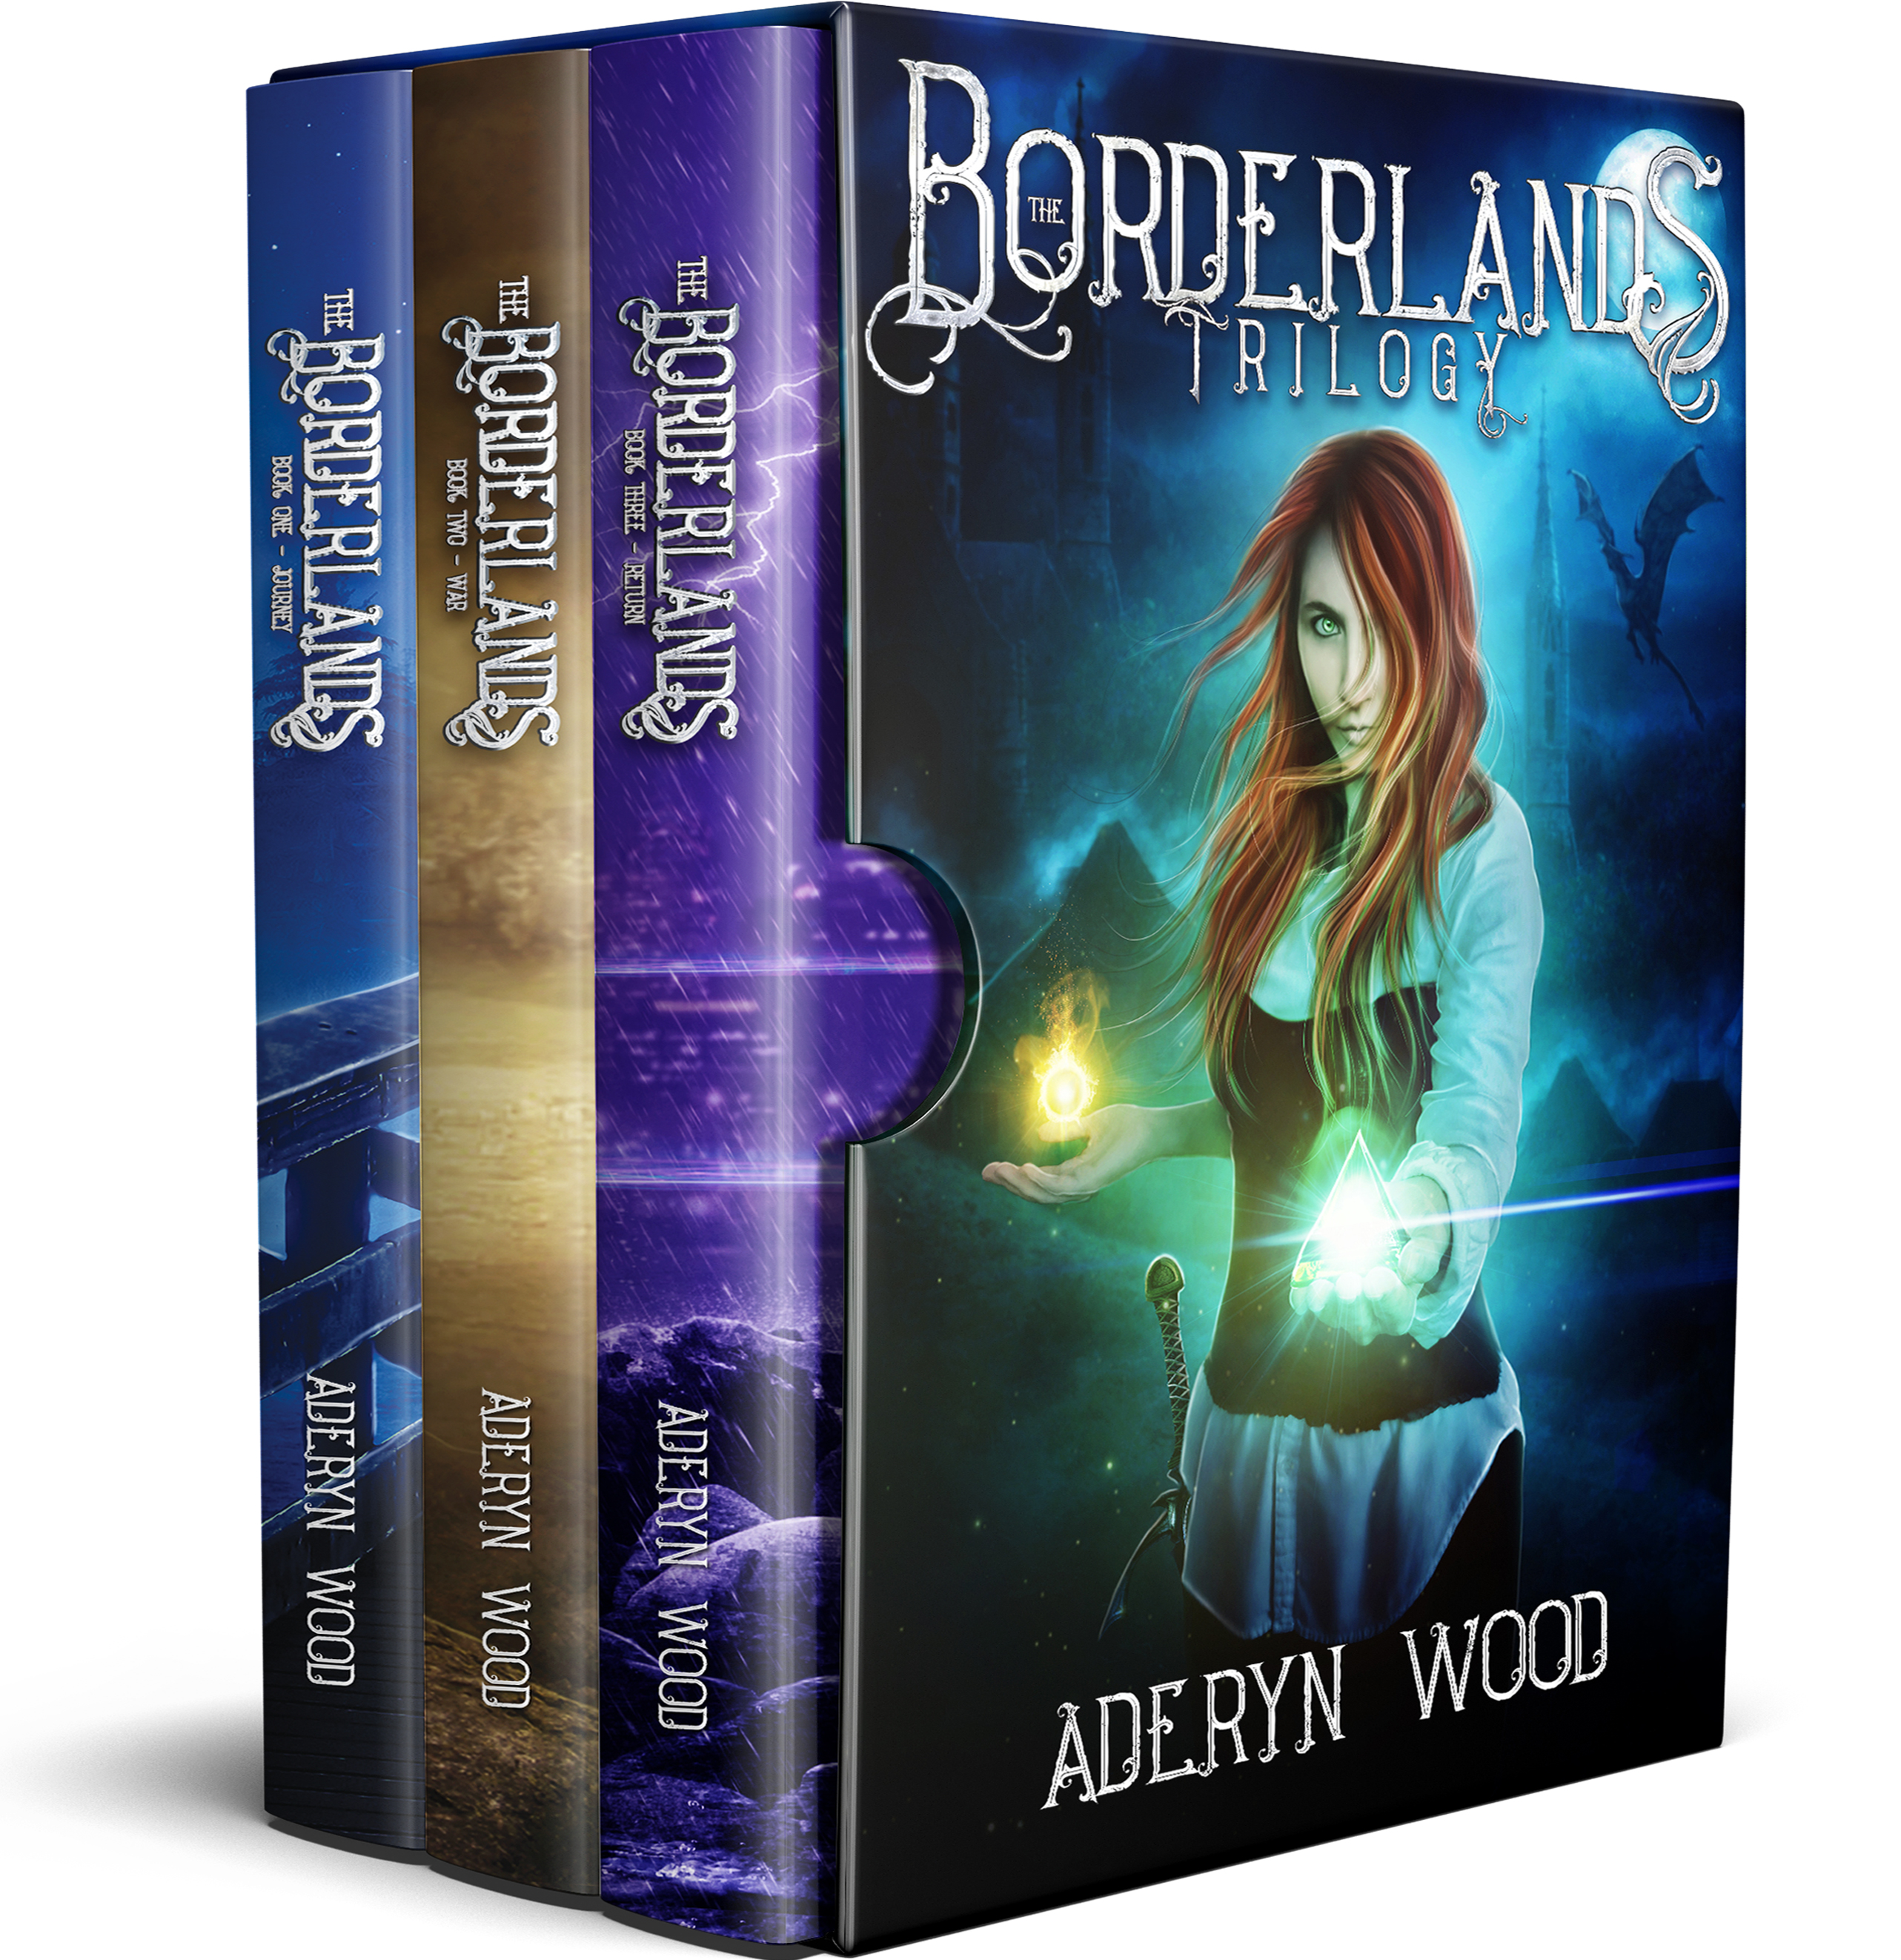 [PDF] [EPUB] The Borderlands: The Complete Trilogy Download by Aderyn Wood